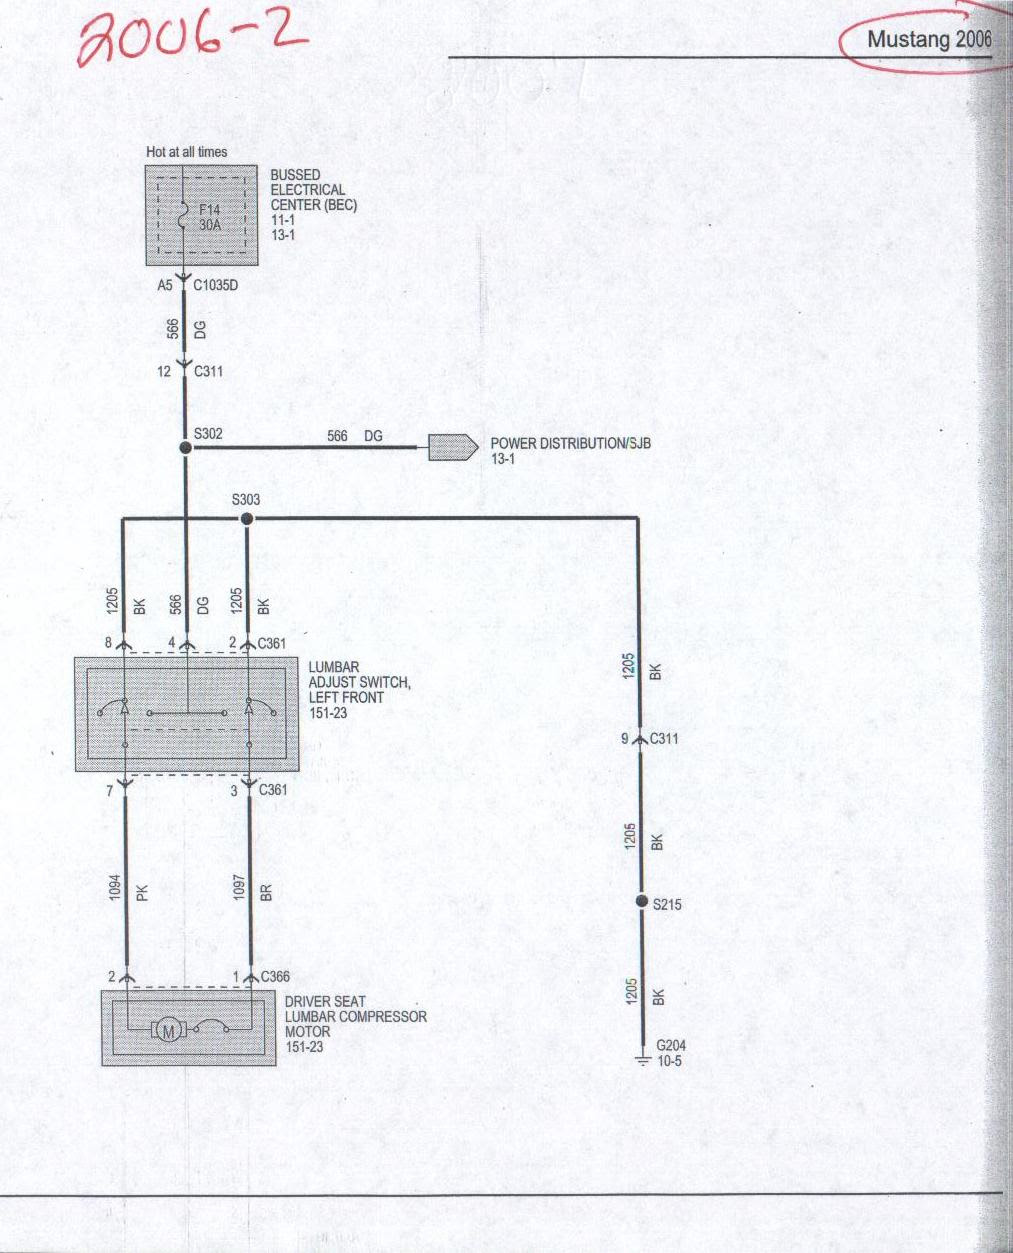 1994 Ford Mustang Power Seat Wiring Diagram 12v Photocell Wiring Diagram Bege Wiring Diagram